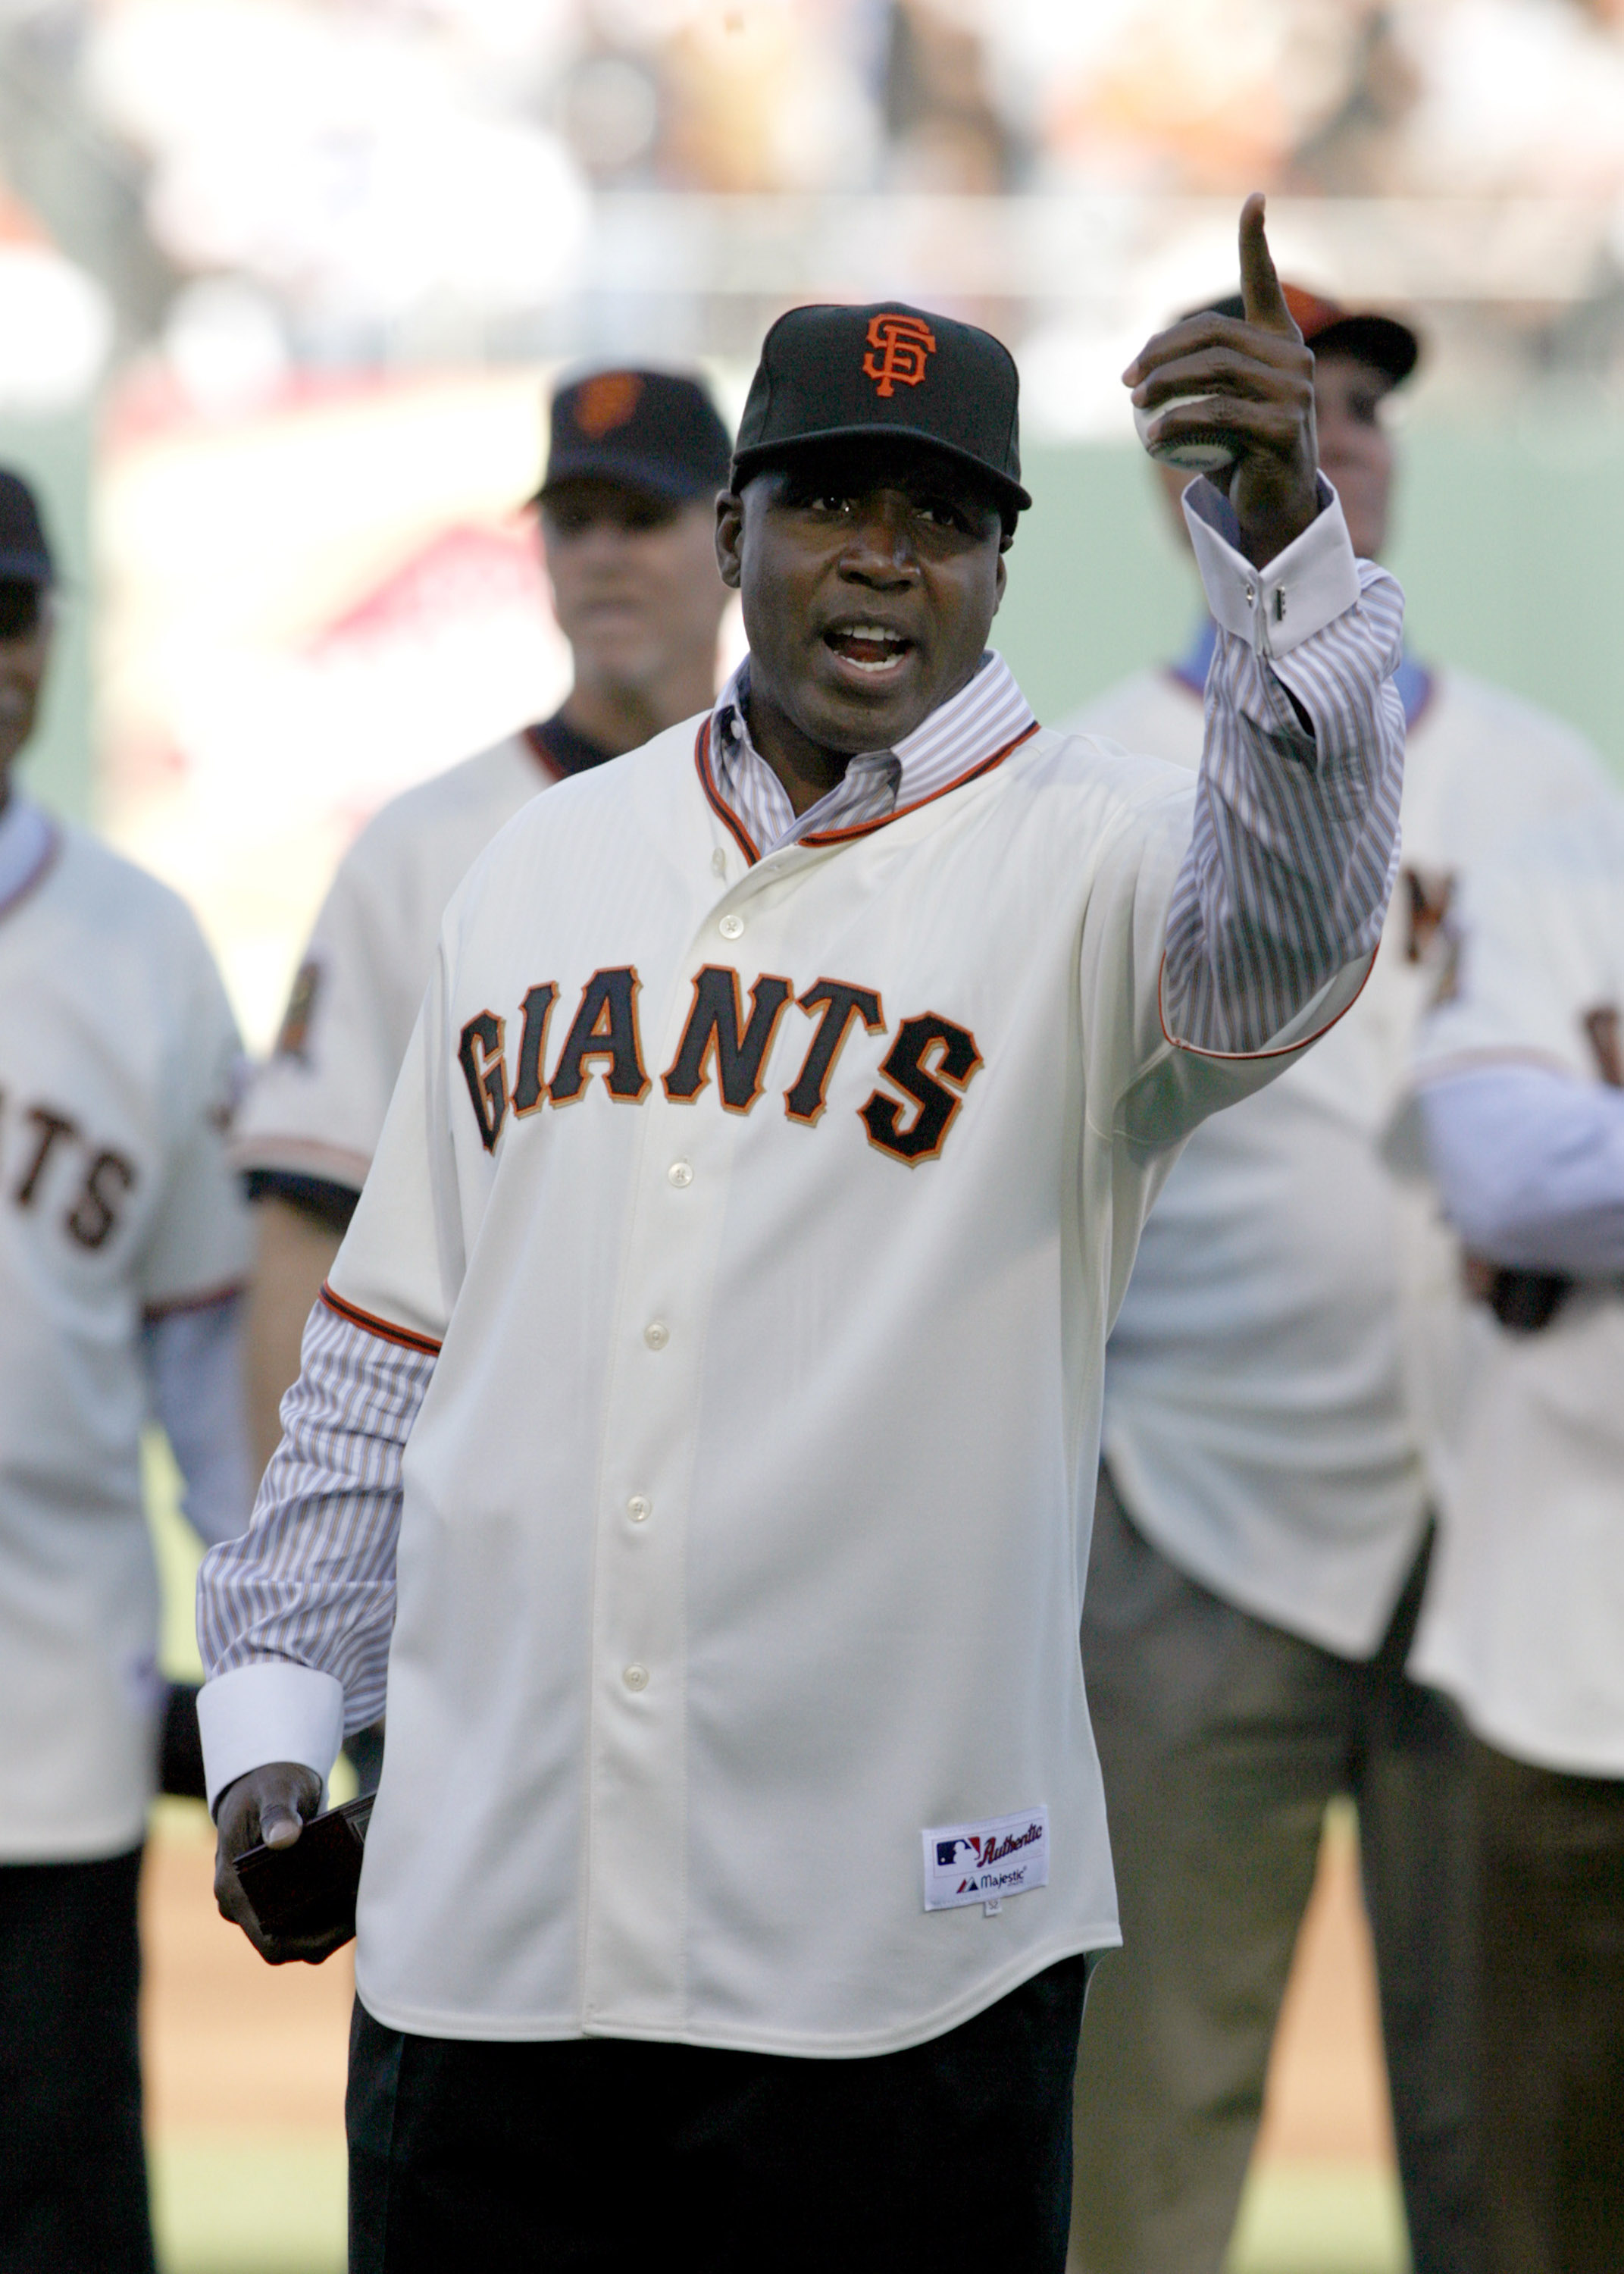 SAN FRANCISCO - AUGUST 9: Barry Bonds points to fans during a San Francisco Giants 50th Anniversary celebration before the game between the Los Angeles Dodgers and San Francisco Giants at AT&T Park on August 9, 2008 in San Francisco, California. (Photo by